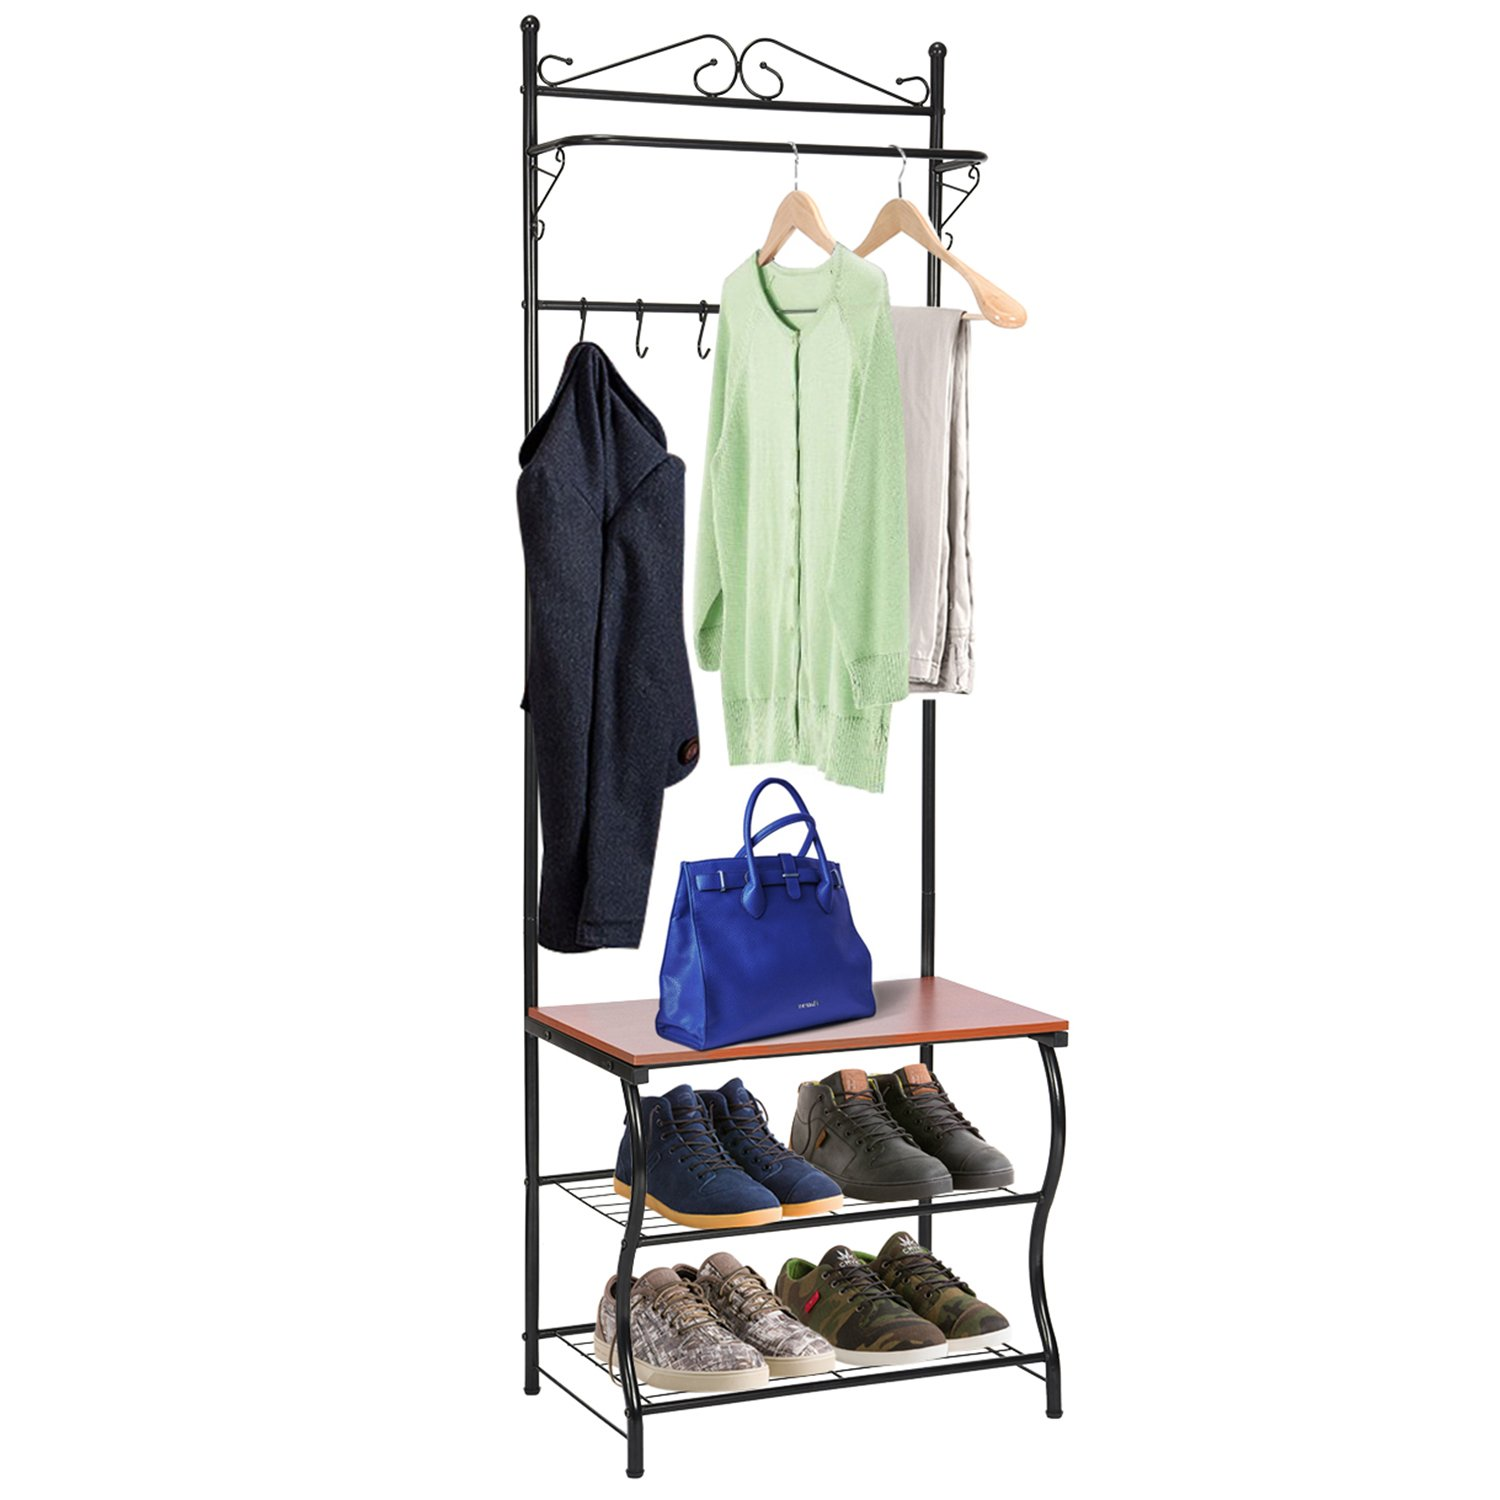 Cheap Storage Bench Coat Rack Find Storage Bench Coat Rack Deals On Line At Alibaba Com